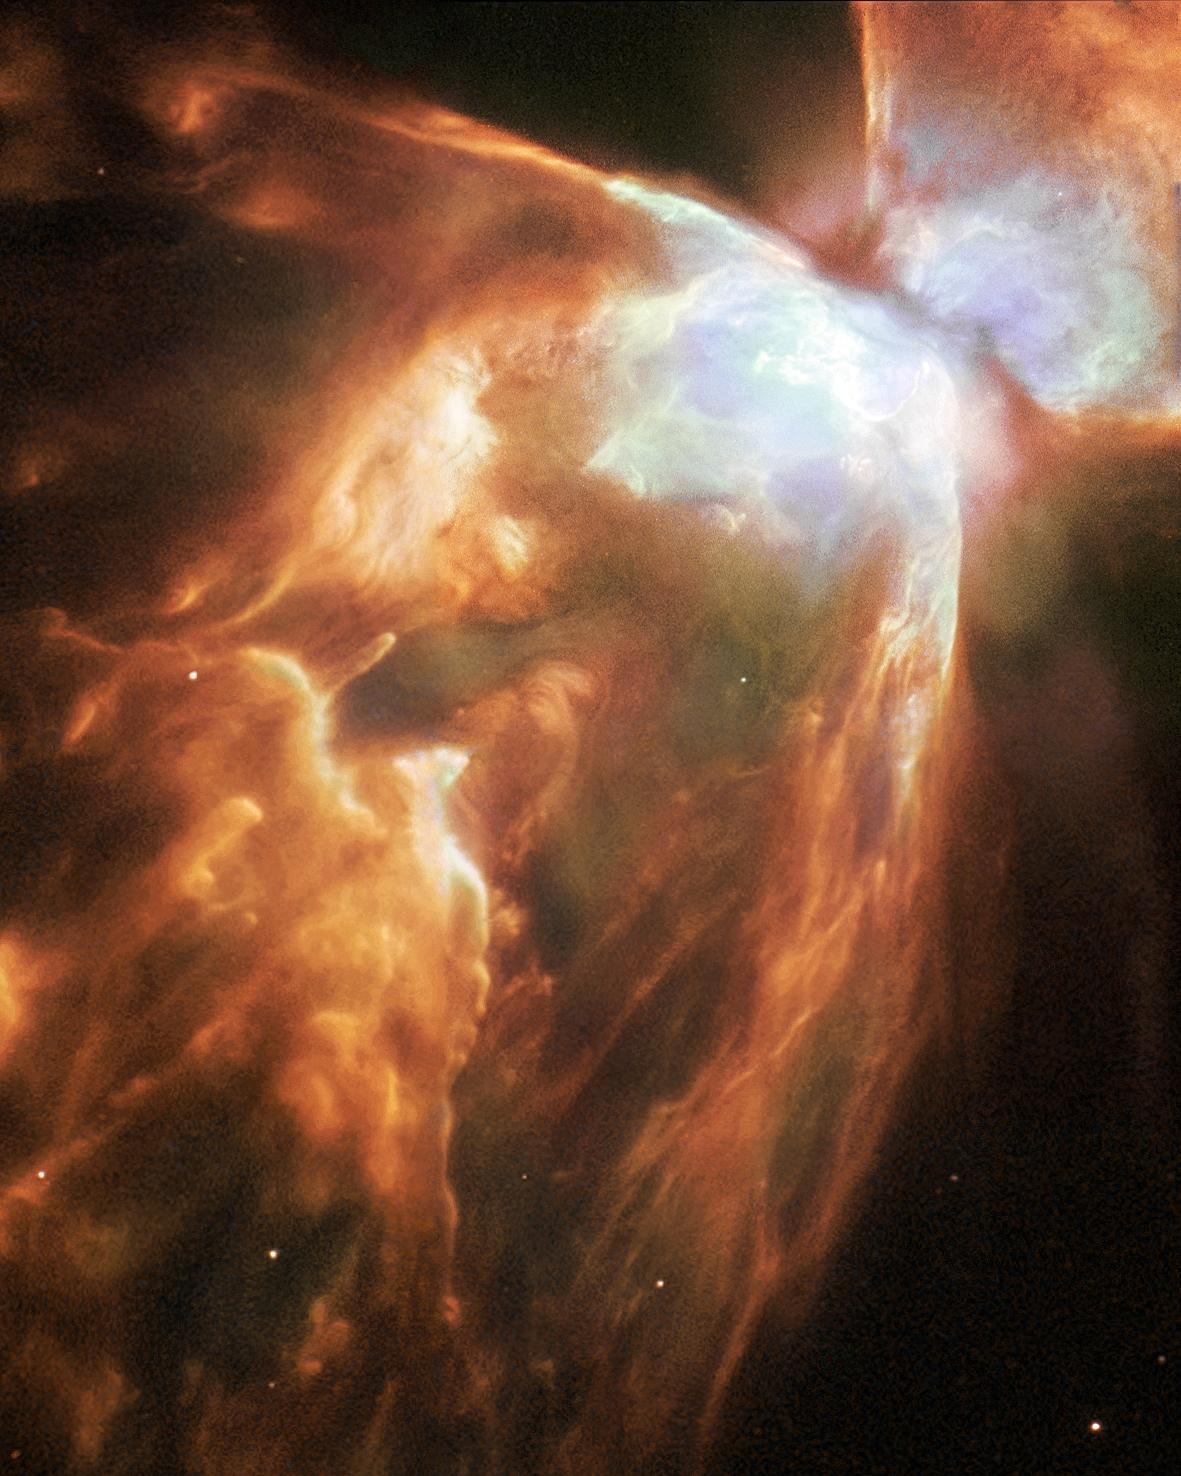 Dying Star Shrouded by a Blanket of Hailstones Forms the Bug Nebula